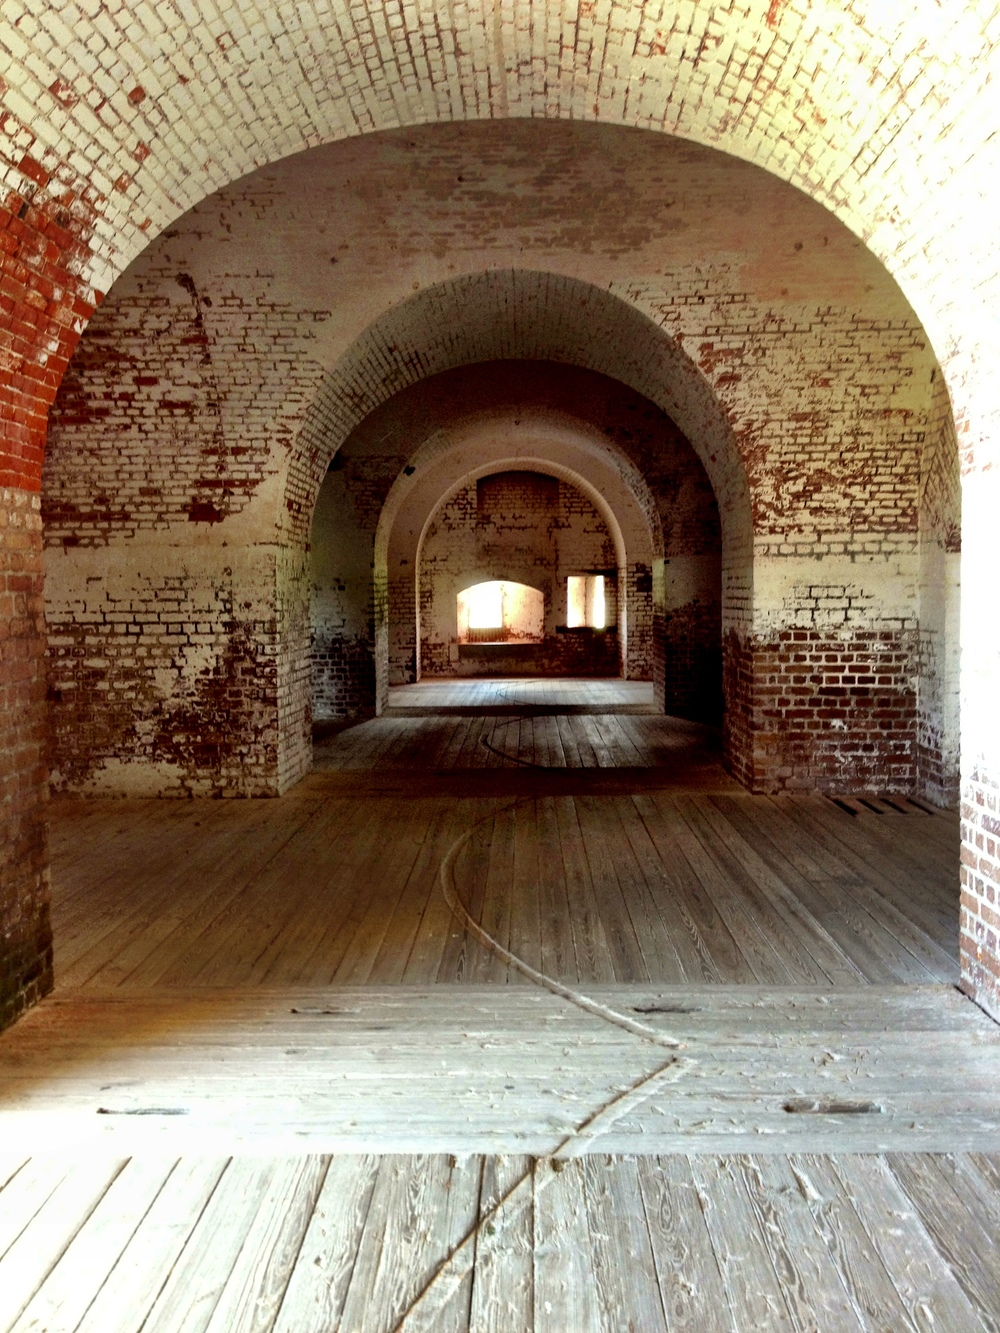 Vaulting. Note the semi-circular grooves in the floor, for rotating the cannons.